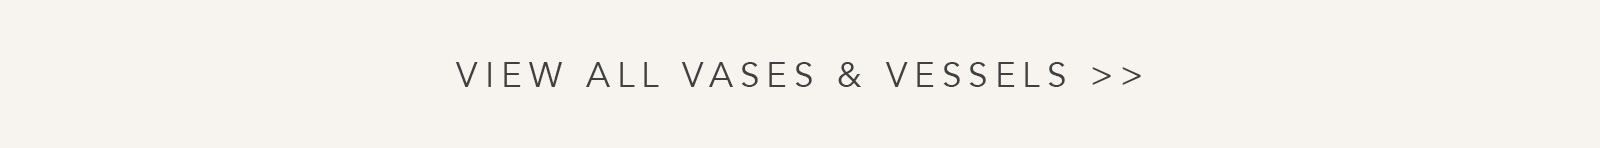 View All Vases & Vessels